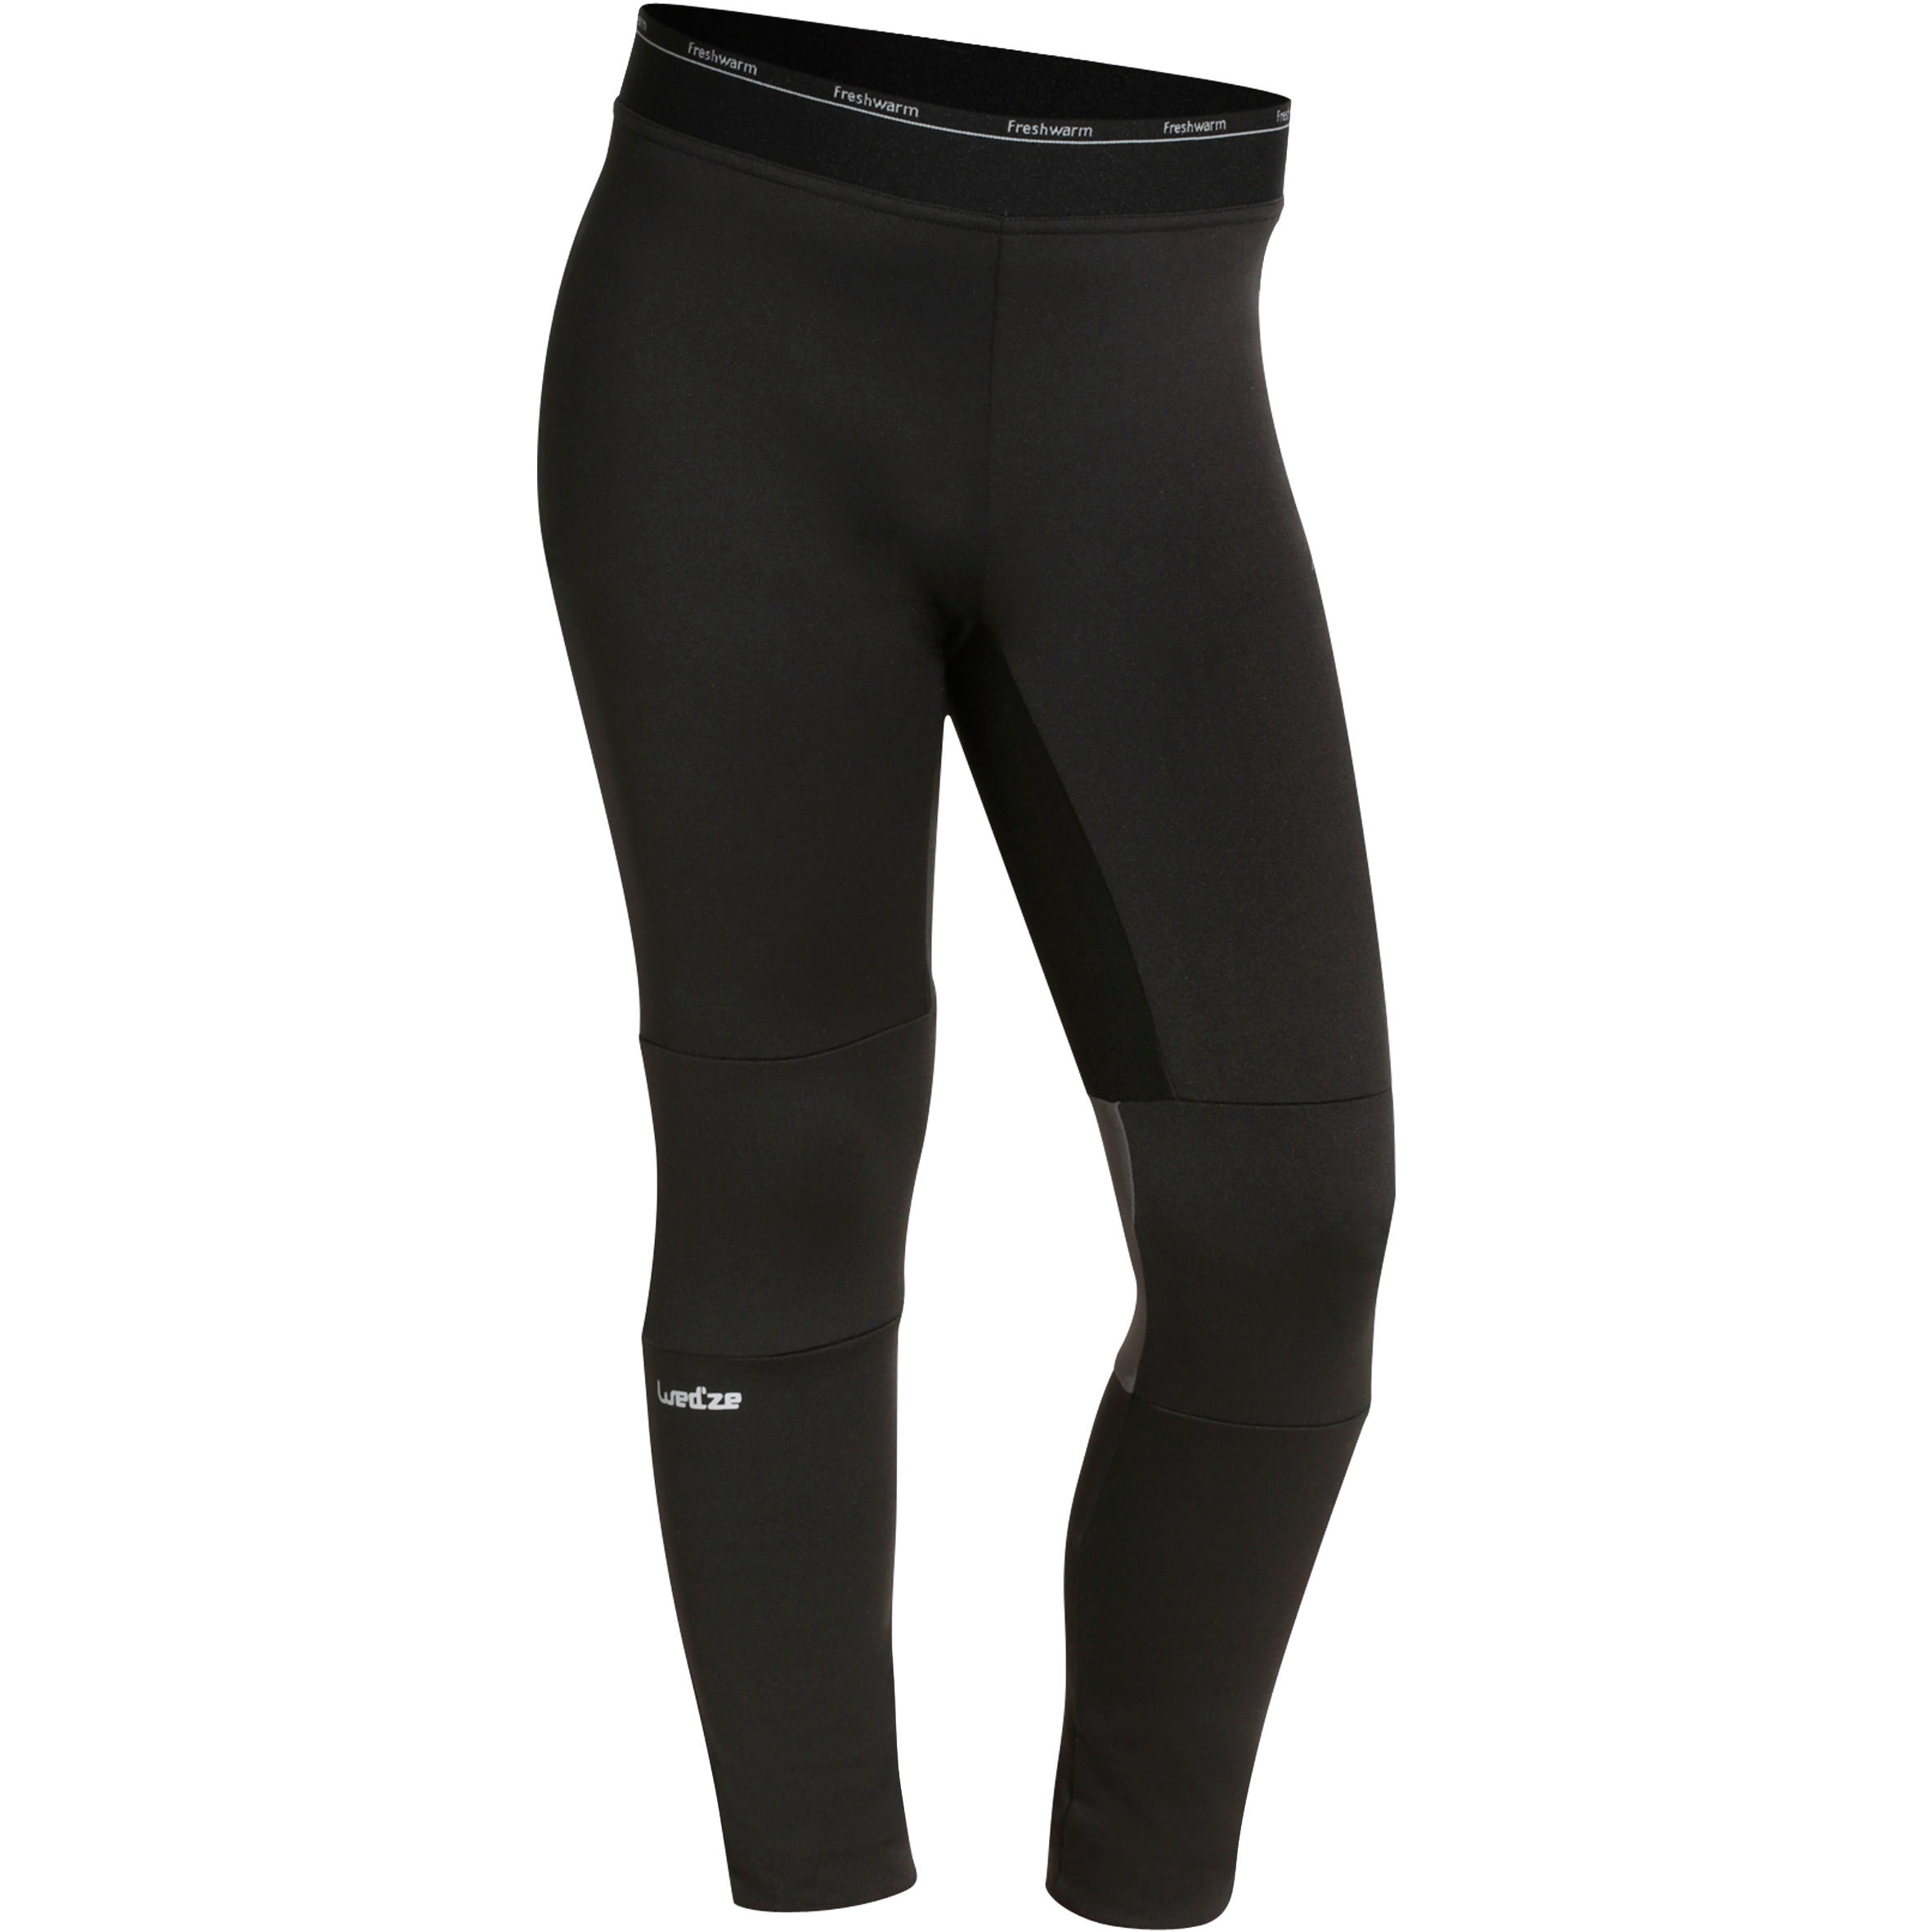 Freshwarm Children's Ski Base-Layer Bottoms - Black